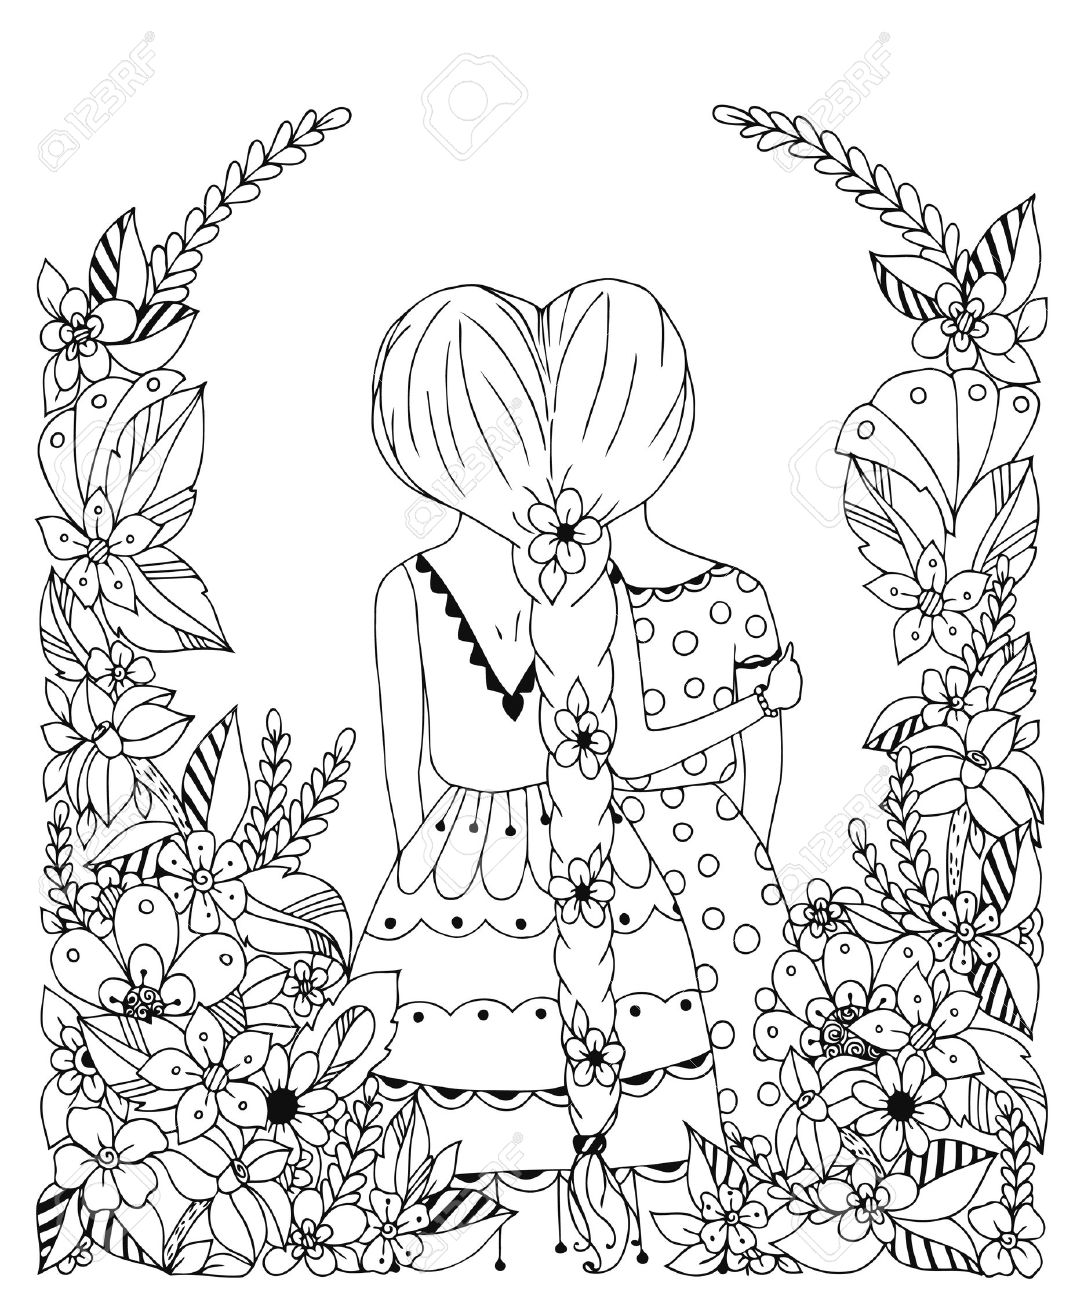 Vector illustration zentangl girl friend in a flower frame, doodle, flowers, spit back. Hugs, friendship. Coloring book for adult anti-stress. Black and white. - 54512461